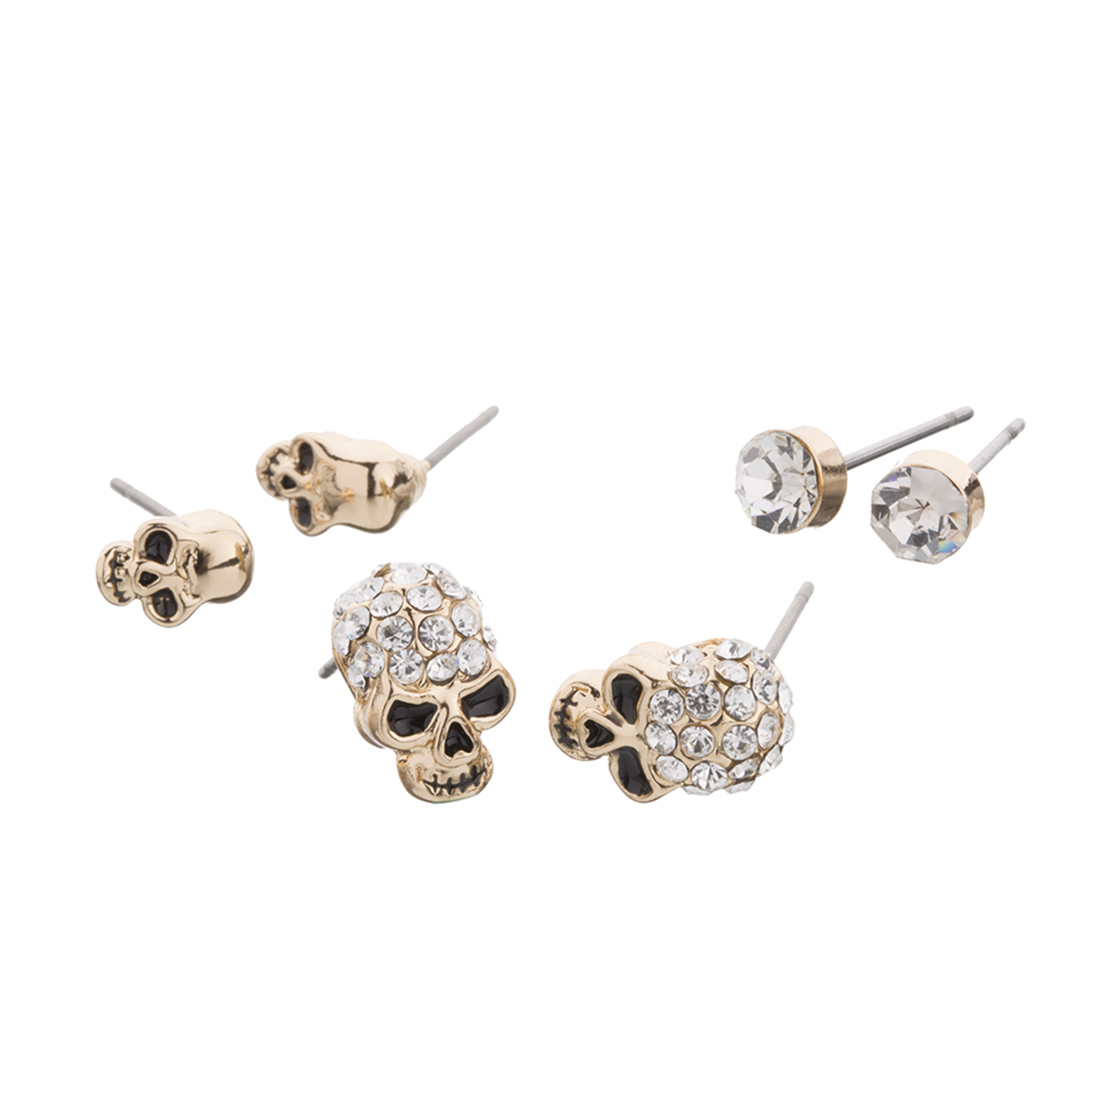 Fancy Products Hip Hop Boho Punk 3 Pairs 1set Silver Plated Skull Earrings Stud Women Fashion Jewelry Accessories Bpan